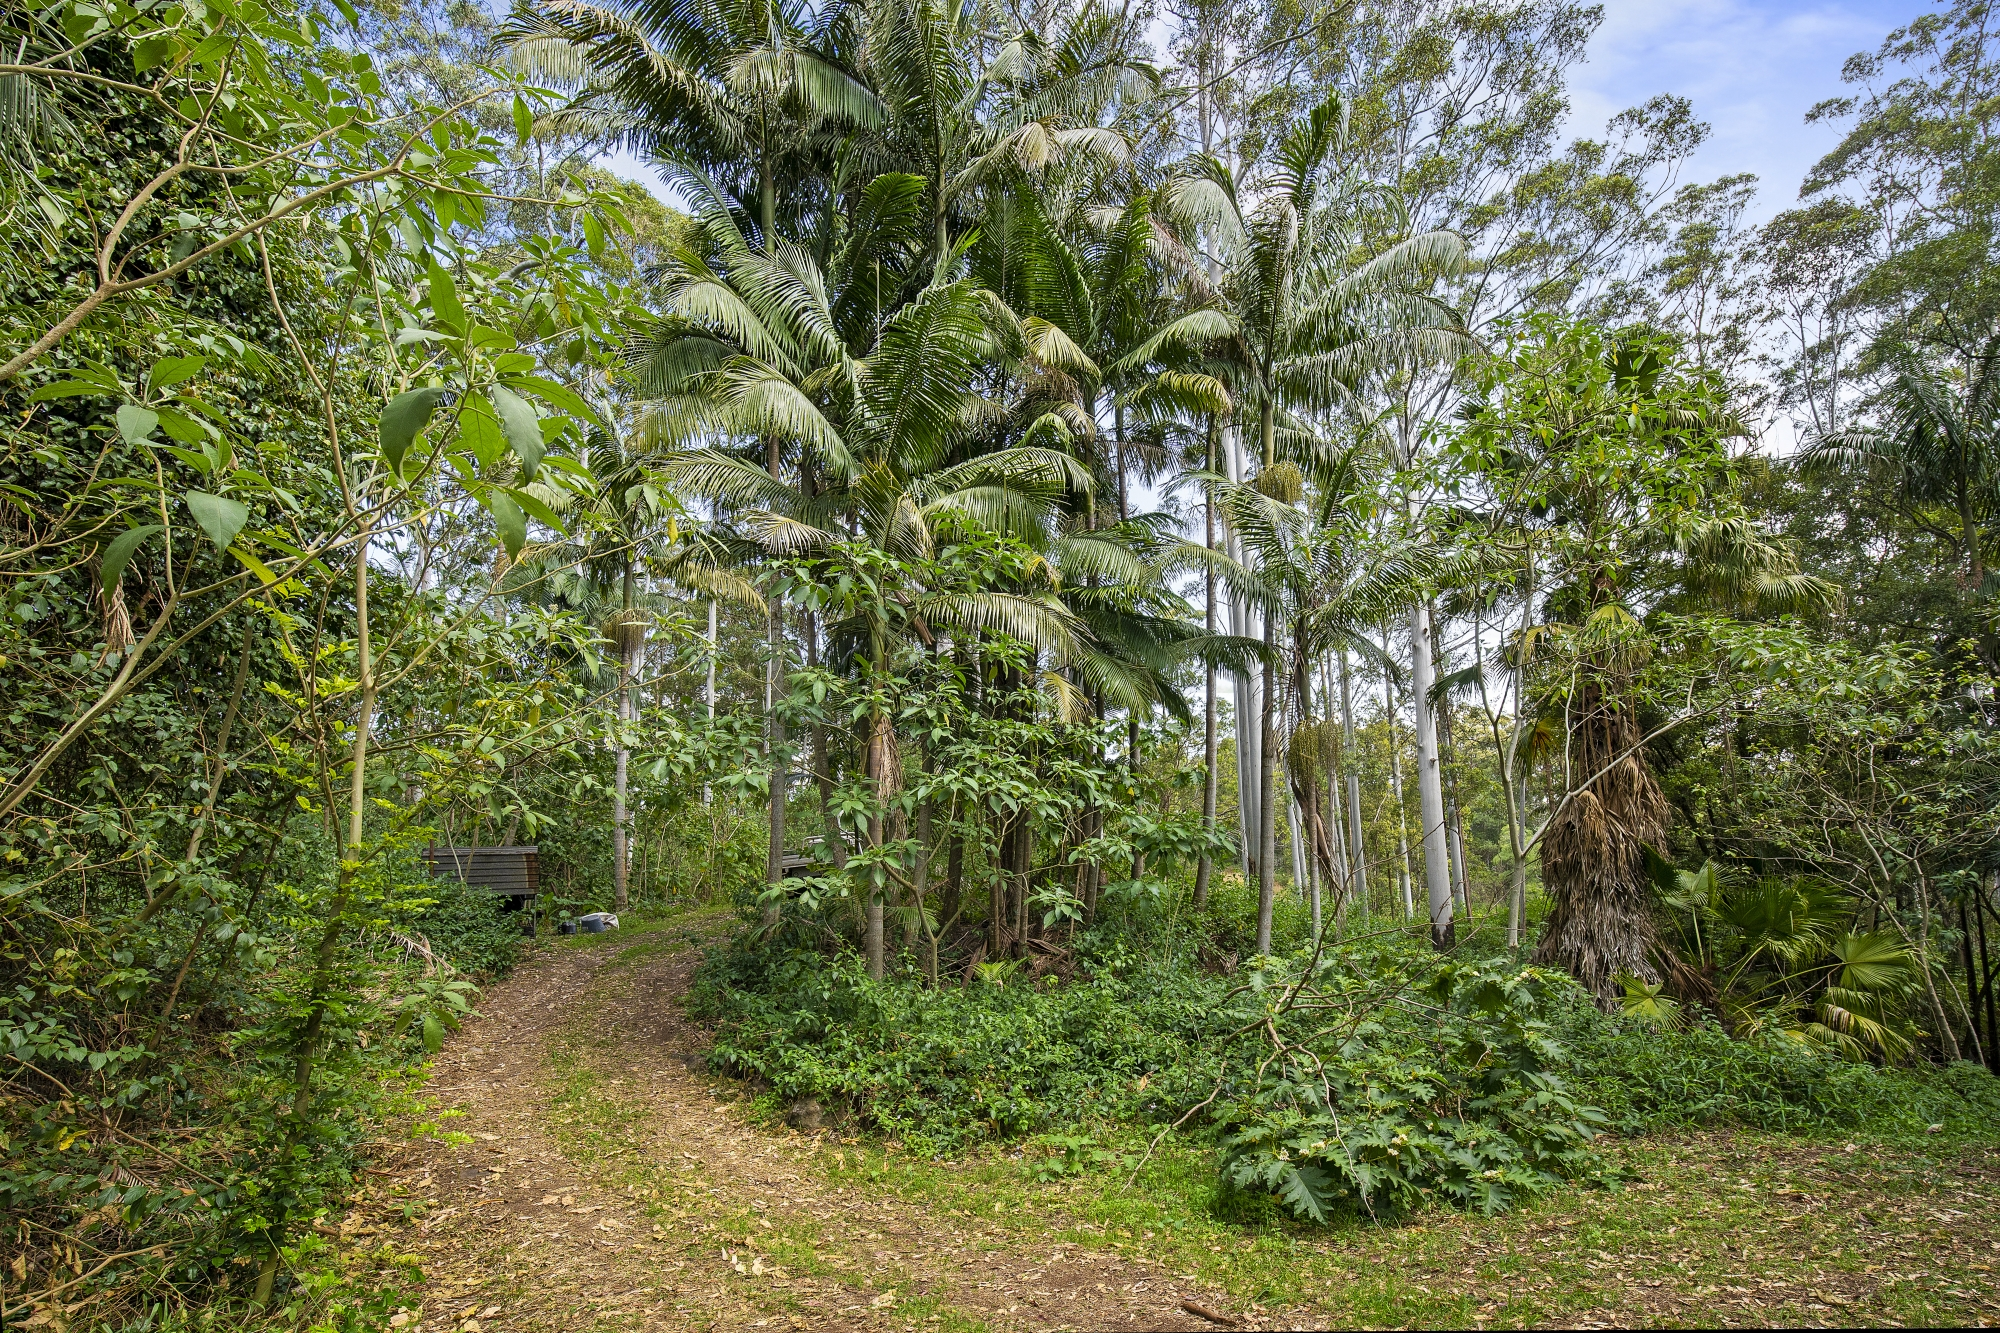 25. Rainforest.jpg